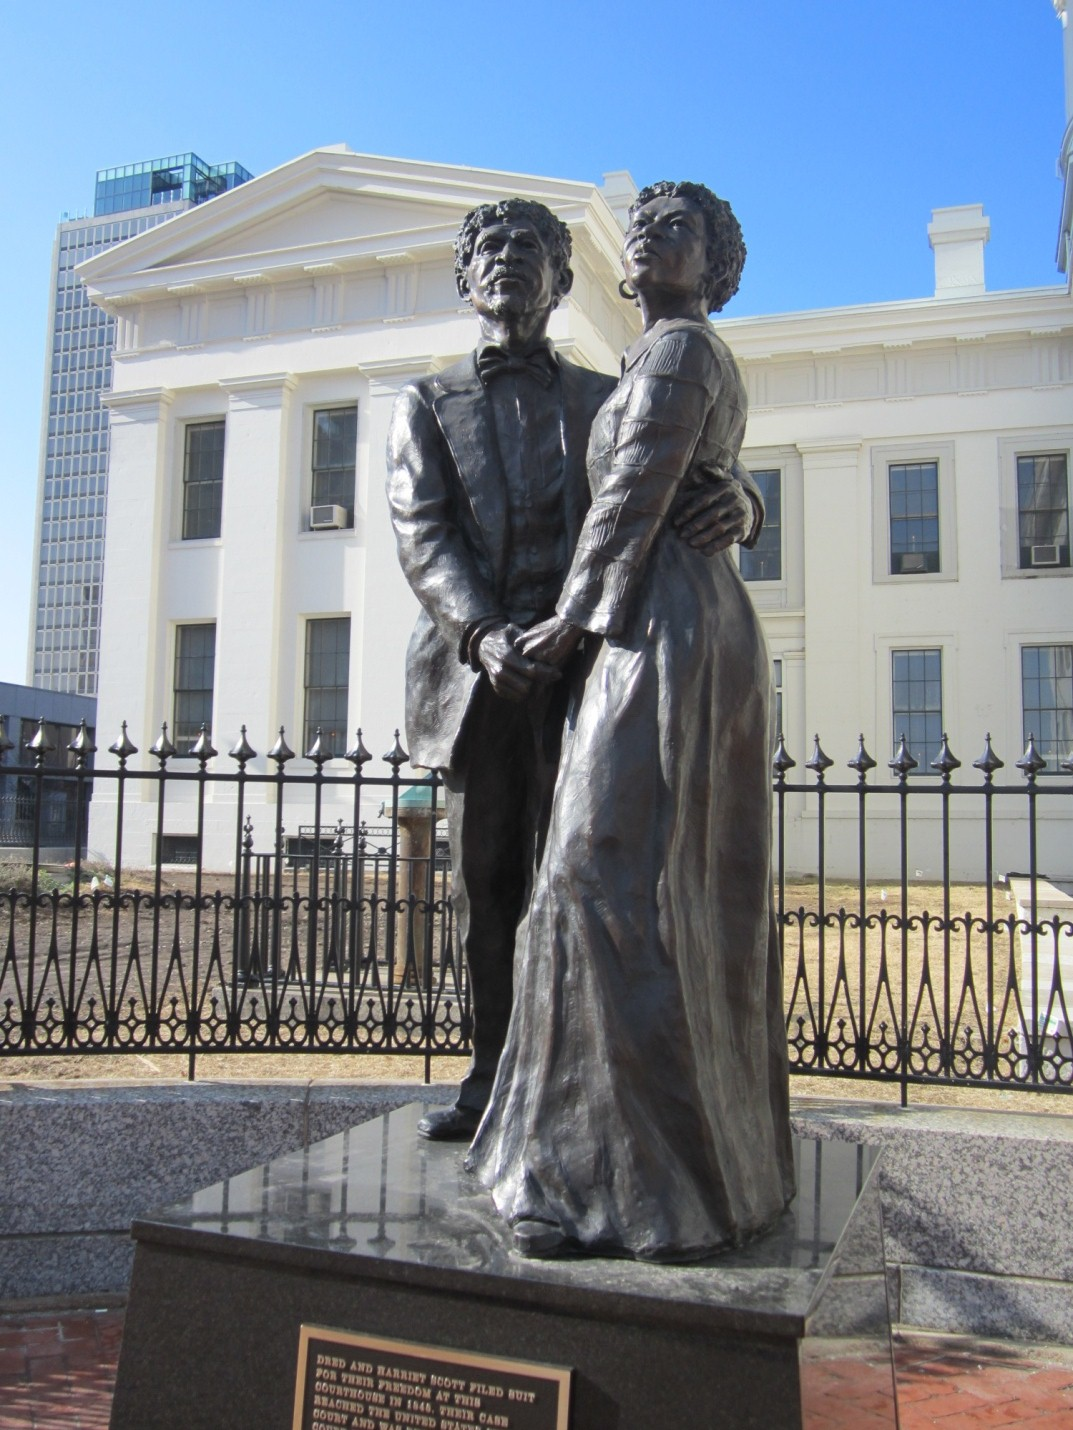 The sculptor, Harry Weber, captures the strength between the two during the eleven year ordeal of the case, as well as their time as slaves in addition to the poor result of the case itself.  The statue itself was unveiled June 8th, 2012.